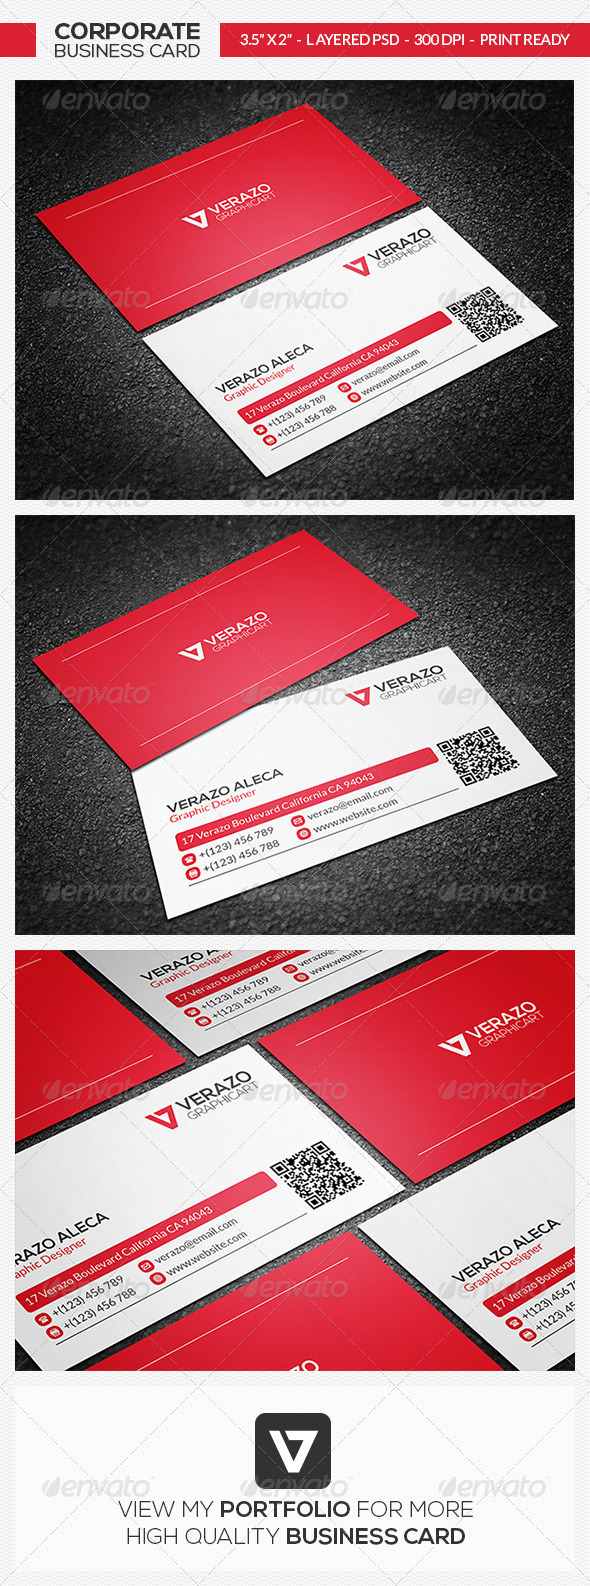 GraphicRiver Corporate Business Card 29 7557401